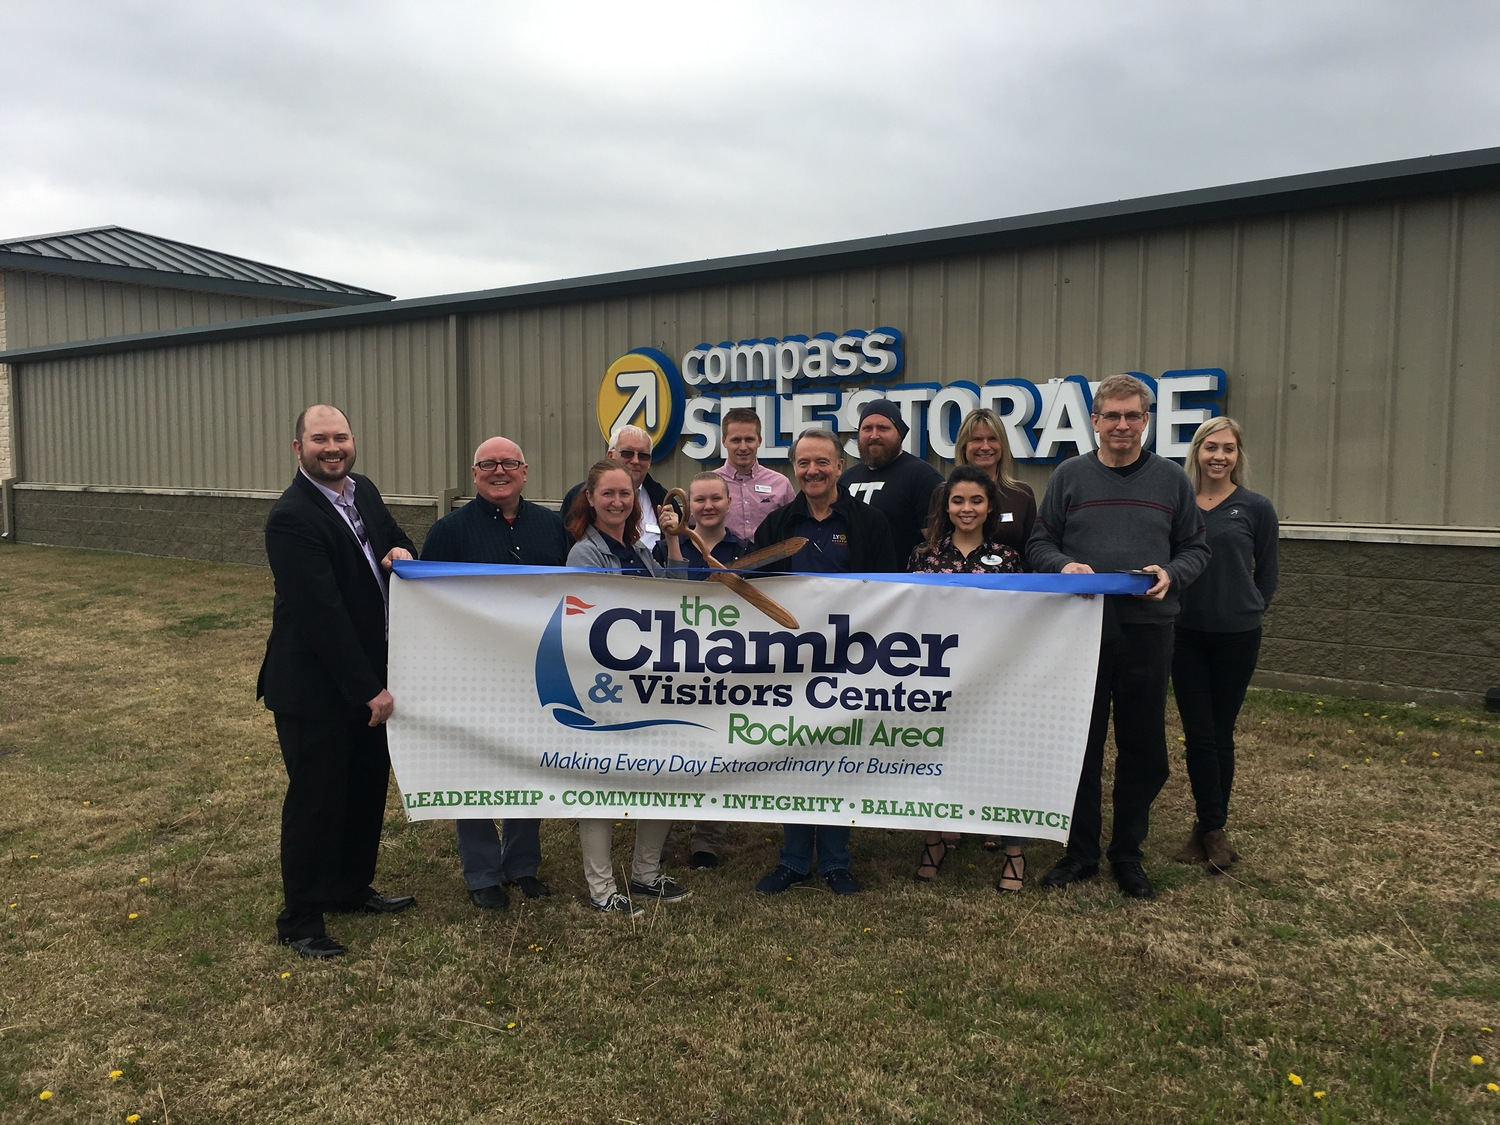 Ribbon cutting celebrates Compass Self Storage property expansion